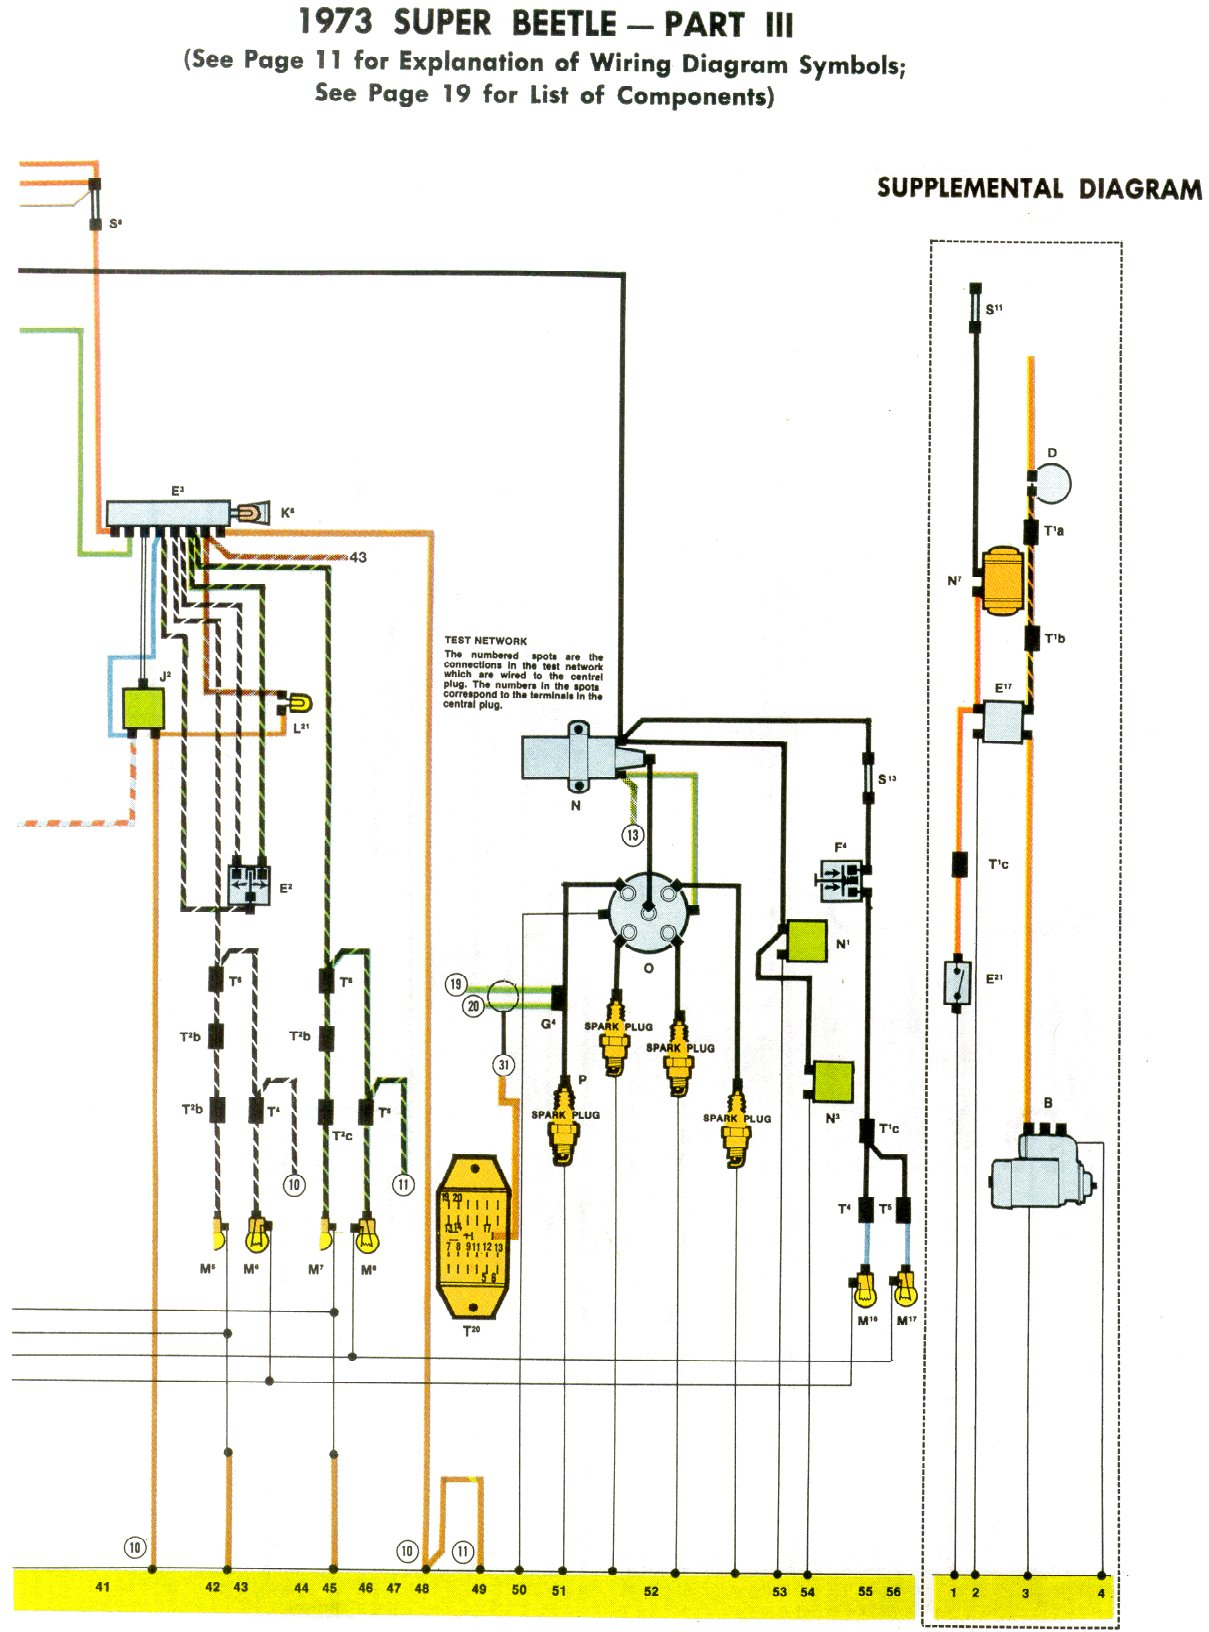 Instrument Cluster Wiring Harness in addition 1965 Volkswagen Dune Buggy as well VW Beetle Engine Diagram further Wiring Diagram BMW R60 in addition 2007 Porsche 911 Turbo. on 1964 volkswagen karmann ghia wiring diagram